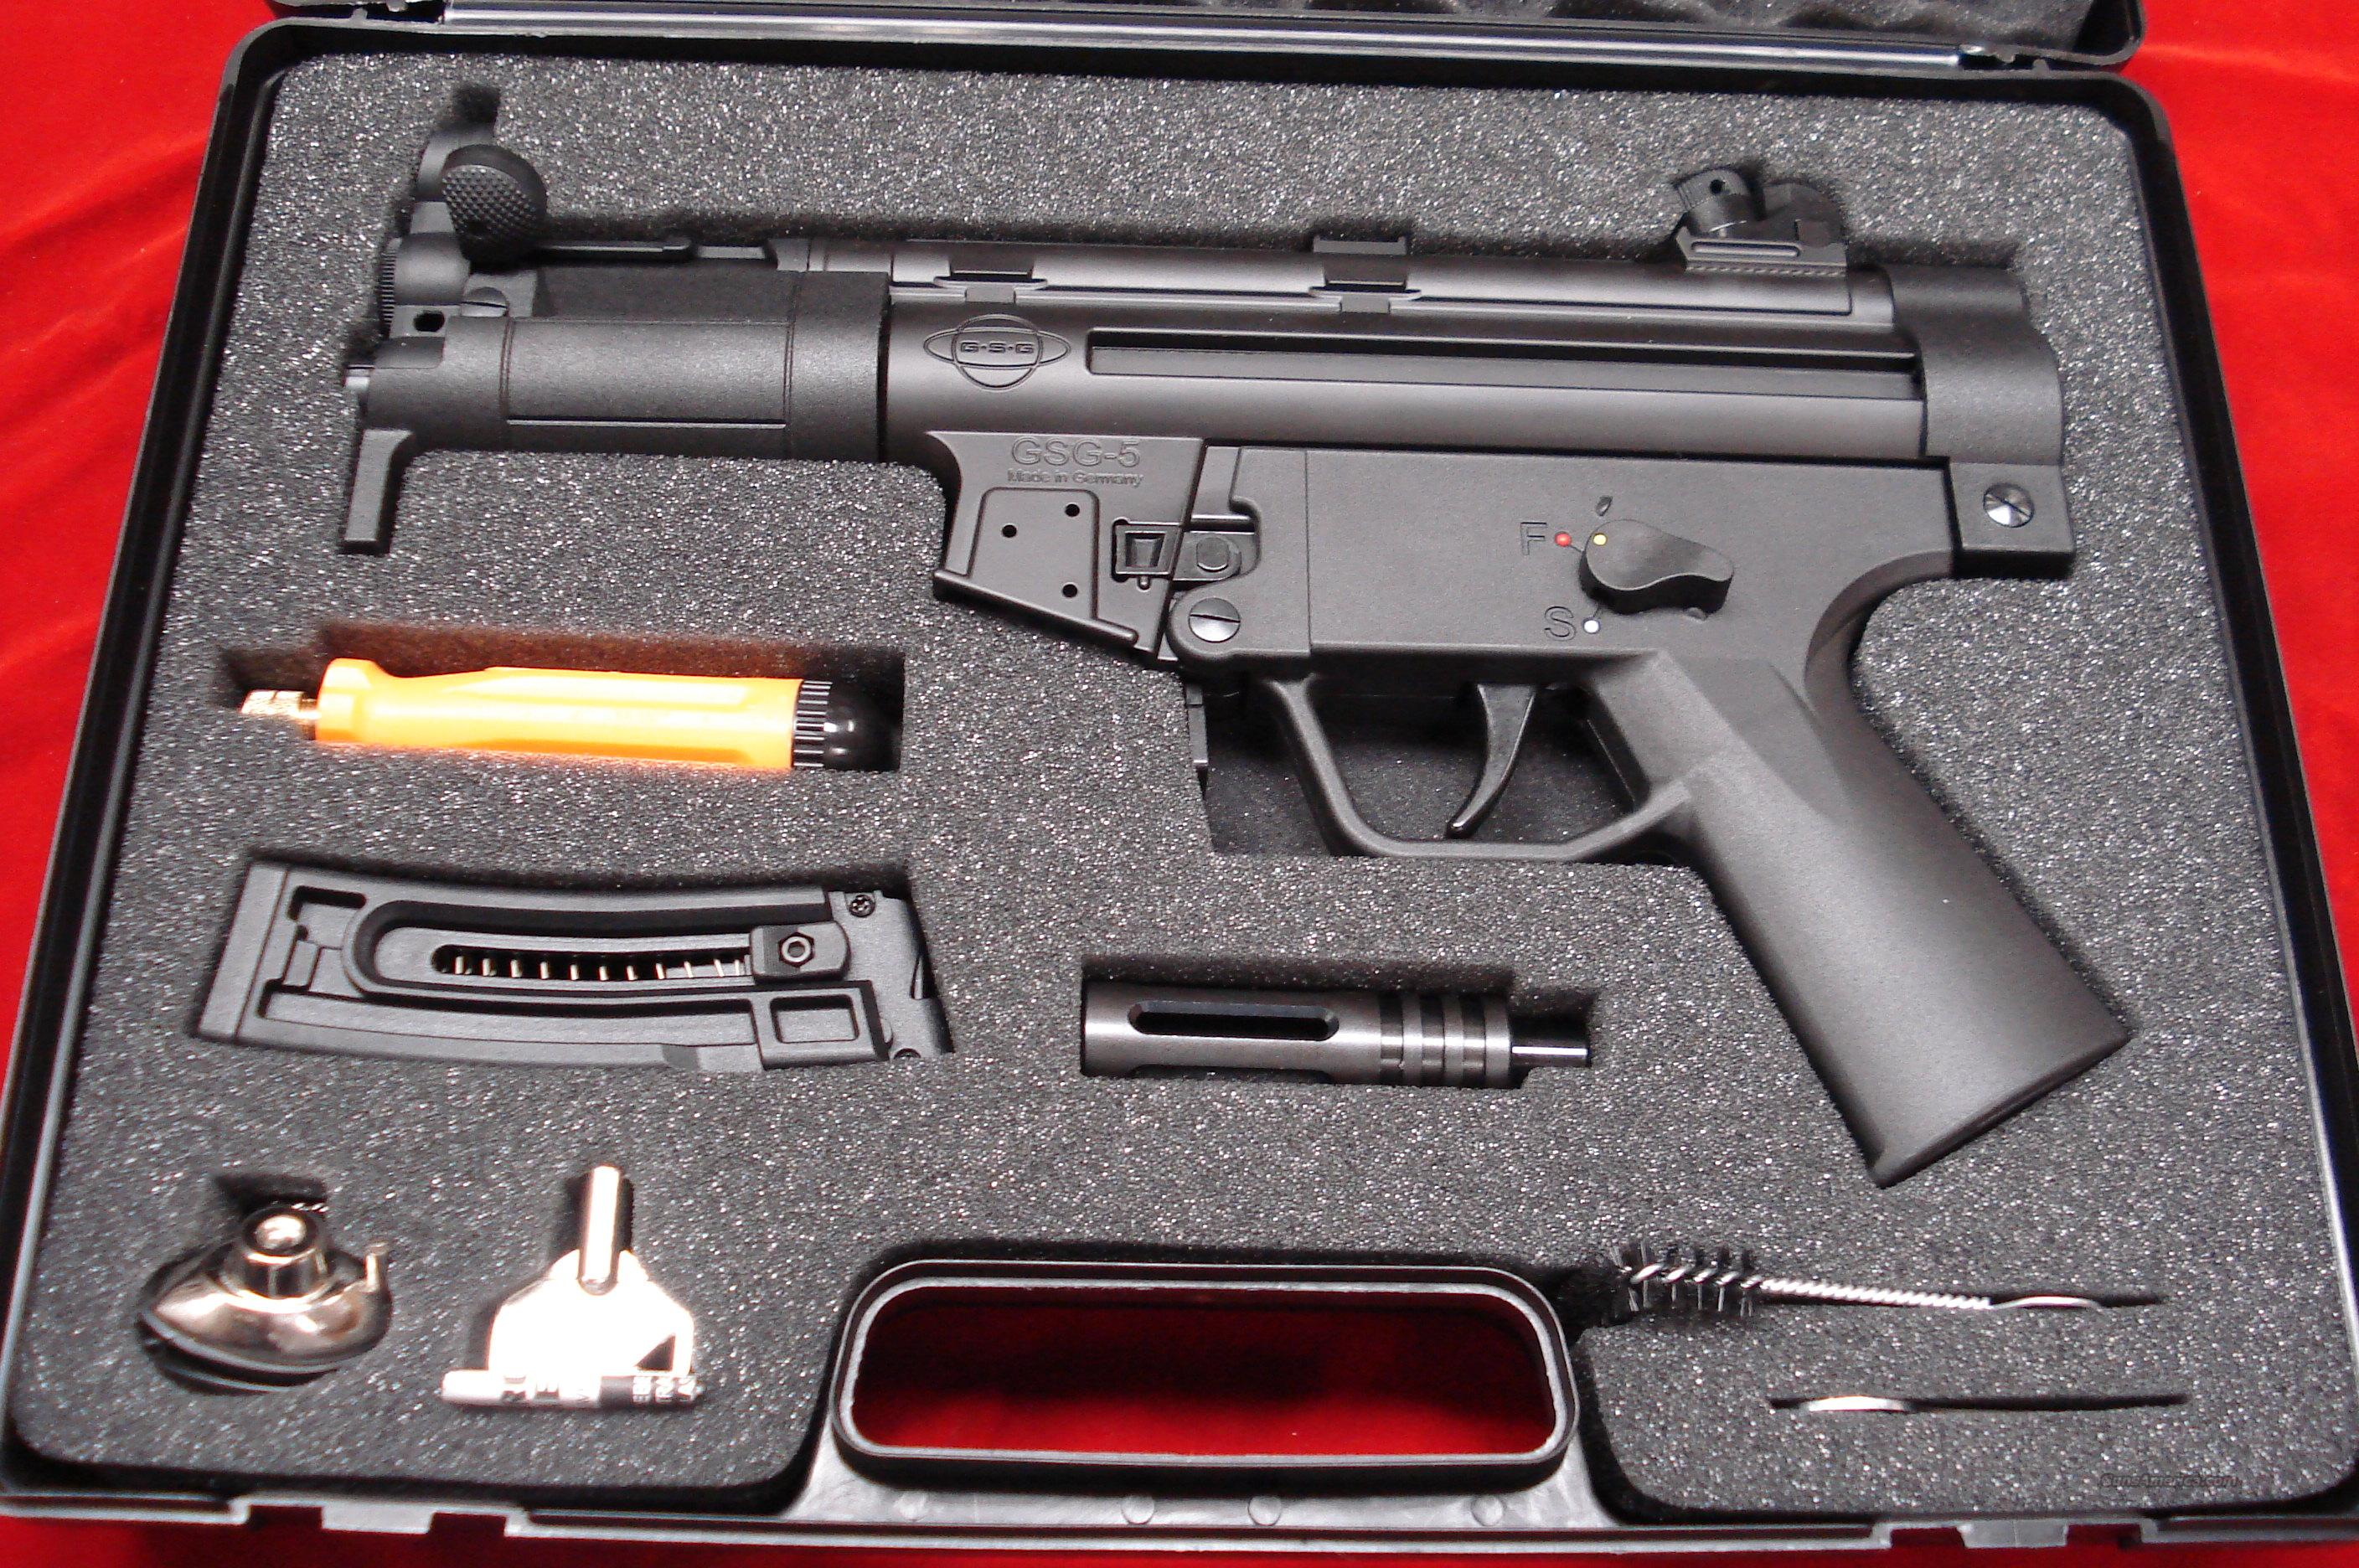 ATI MP5 GERMAN 22 CAL. PISTOL NEW!   Guns > Pistols > Heckler & Koch Pistols > Polymer Frame